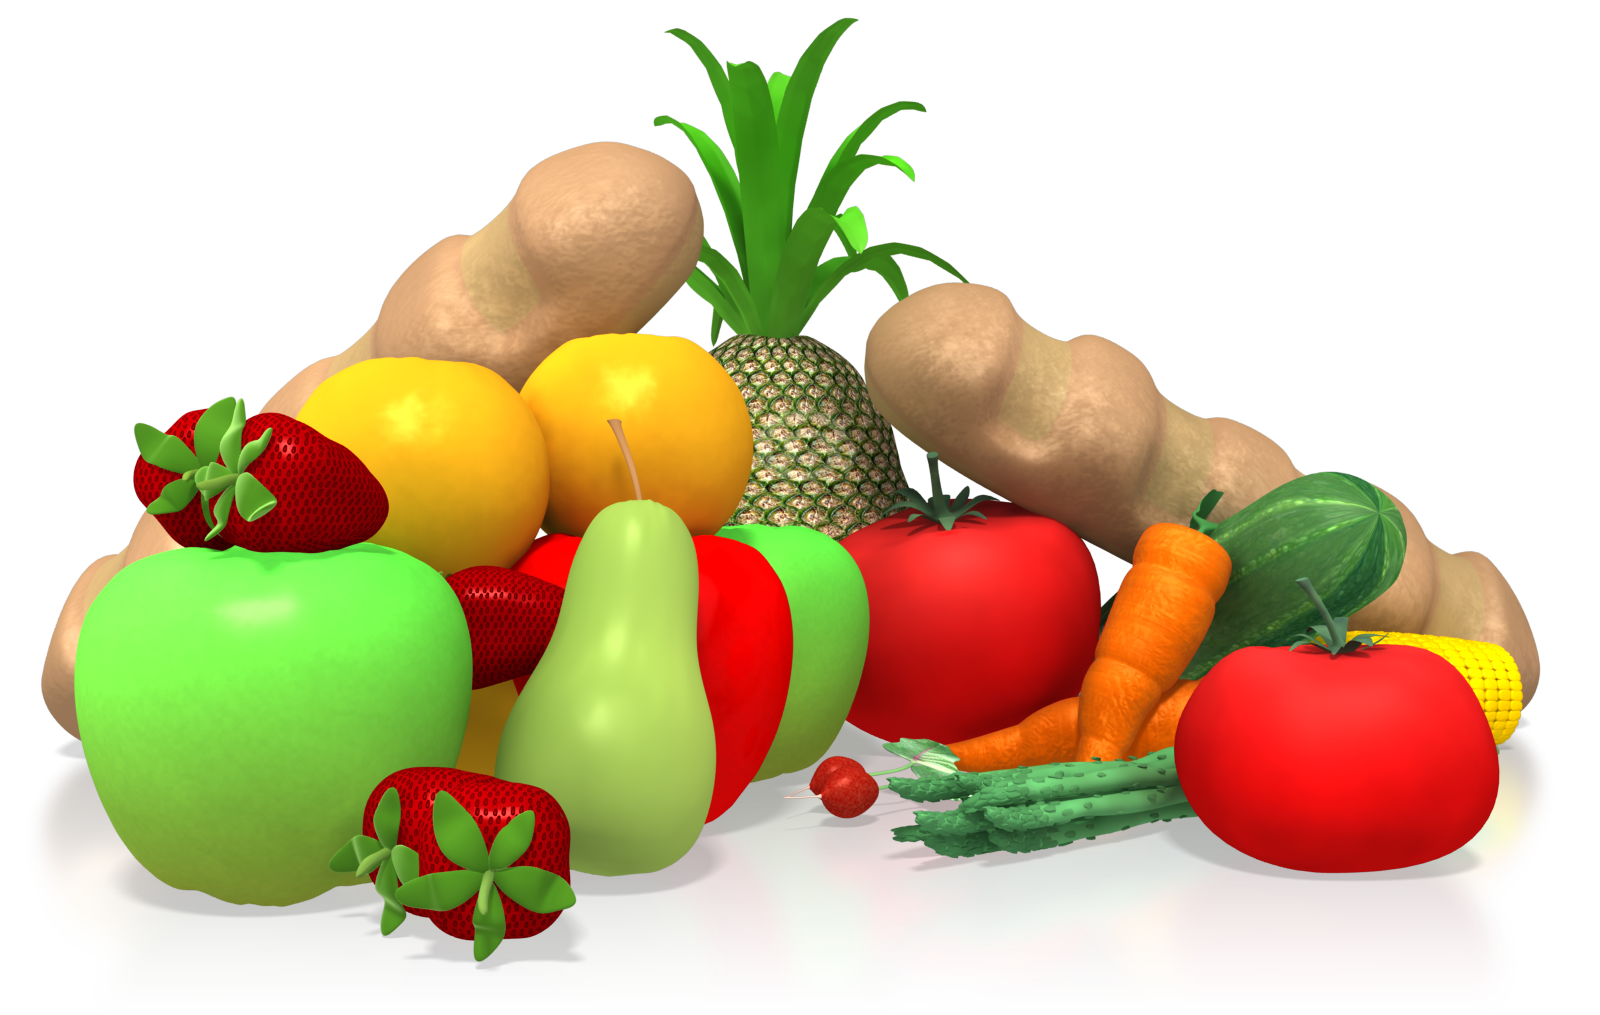 Diet health clip art. Vegetables clipart healthy food